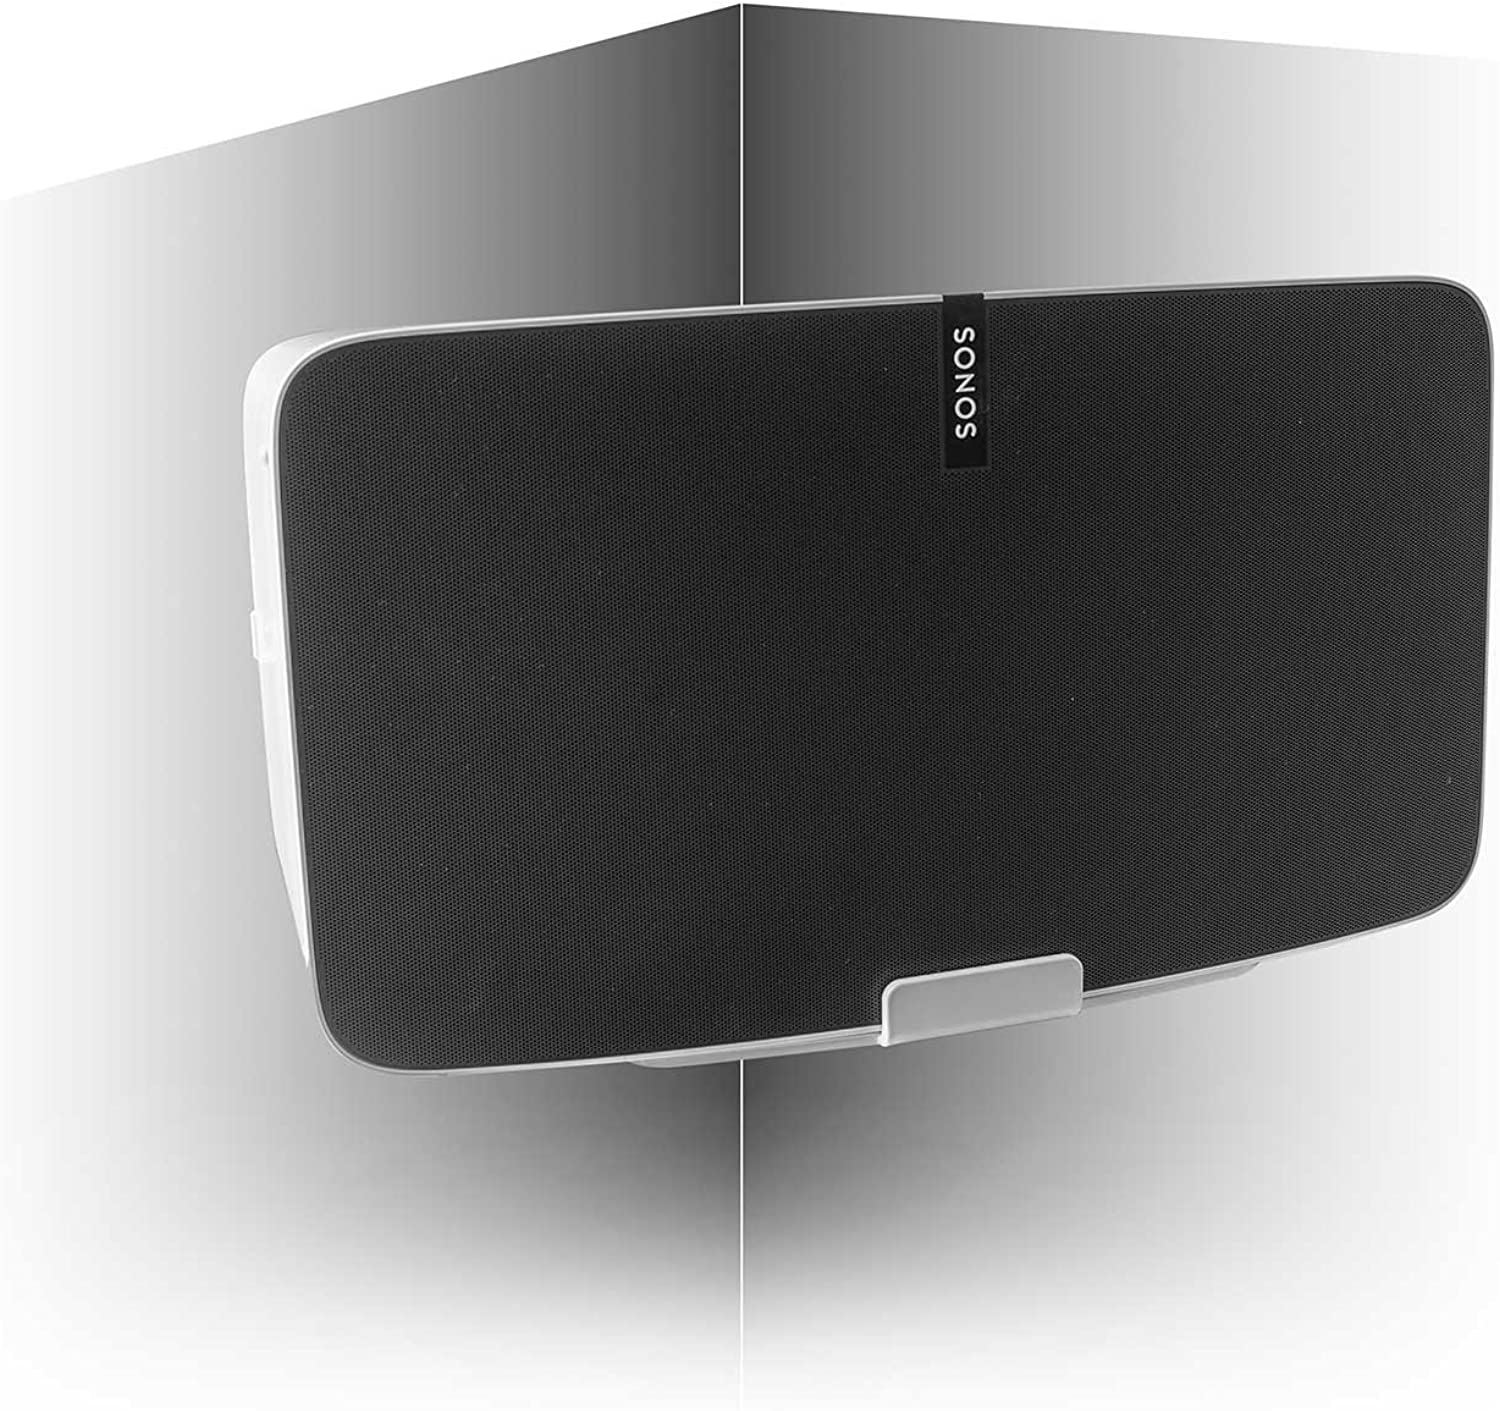 Vebos corner wall mount Play 5 gen 2 white - Compatible with Sonos Play 5